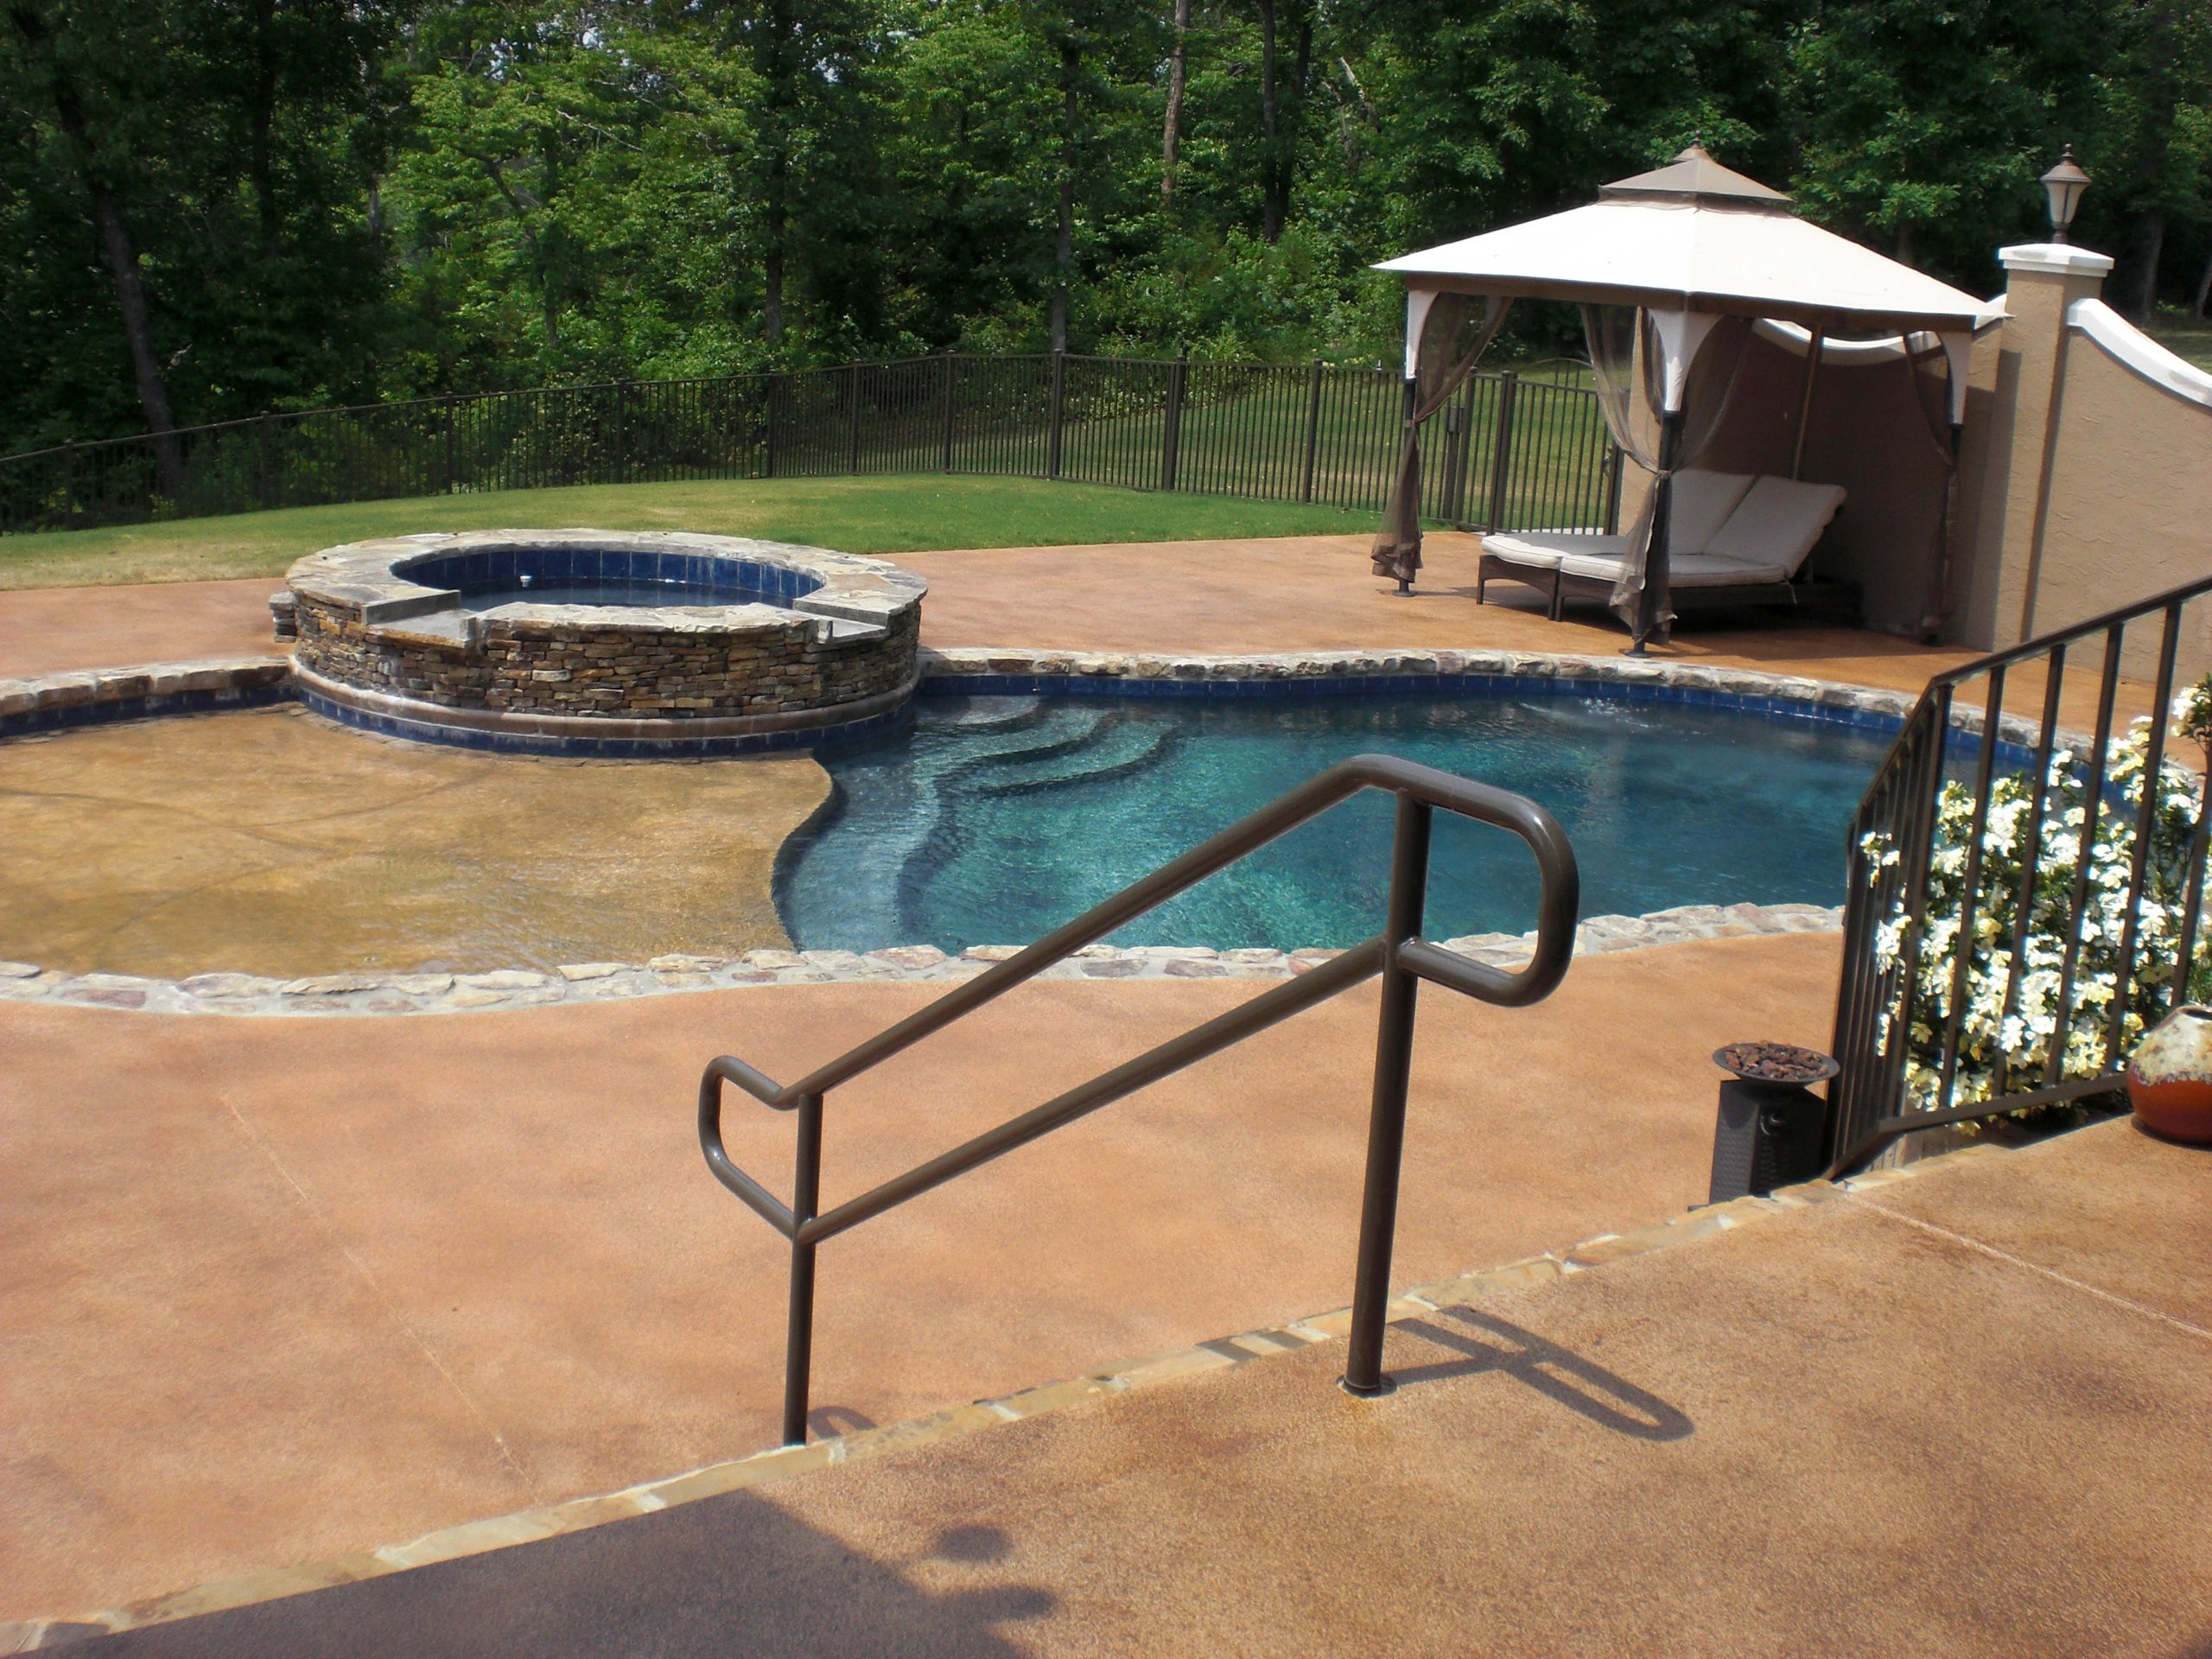 Pool Deck with distressed decorative concrete finish.